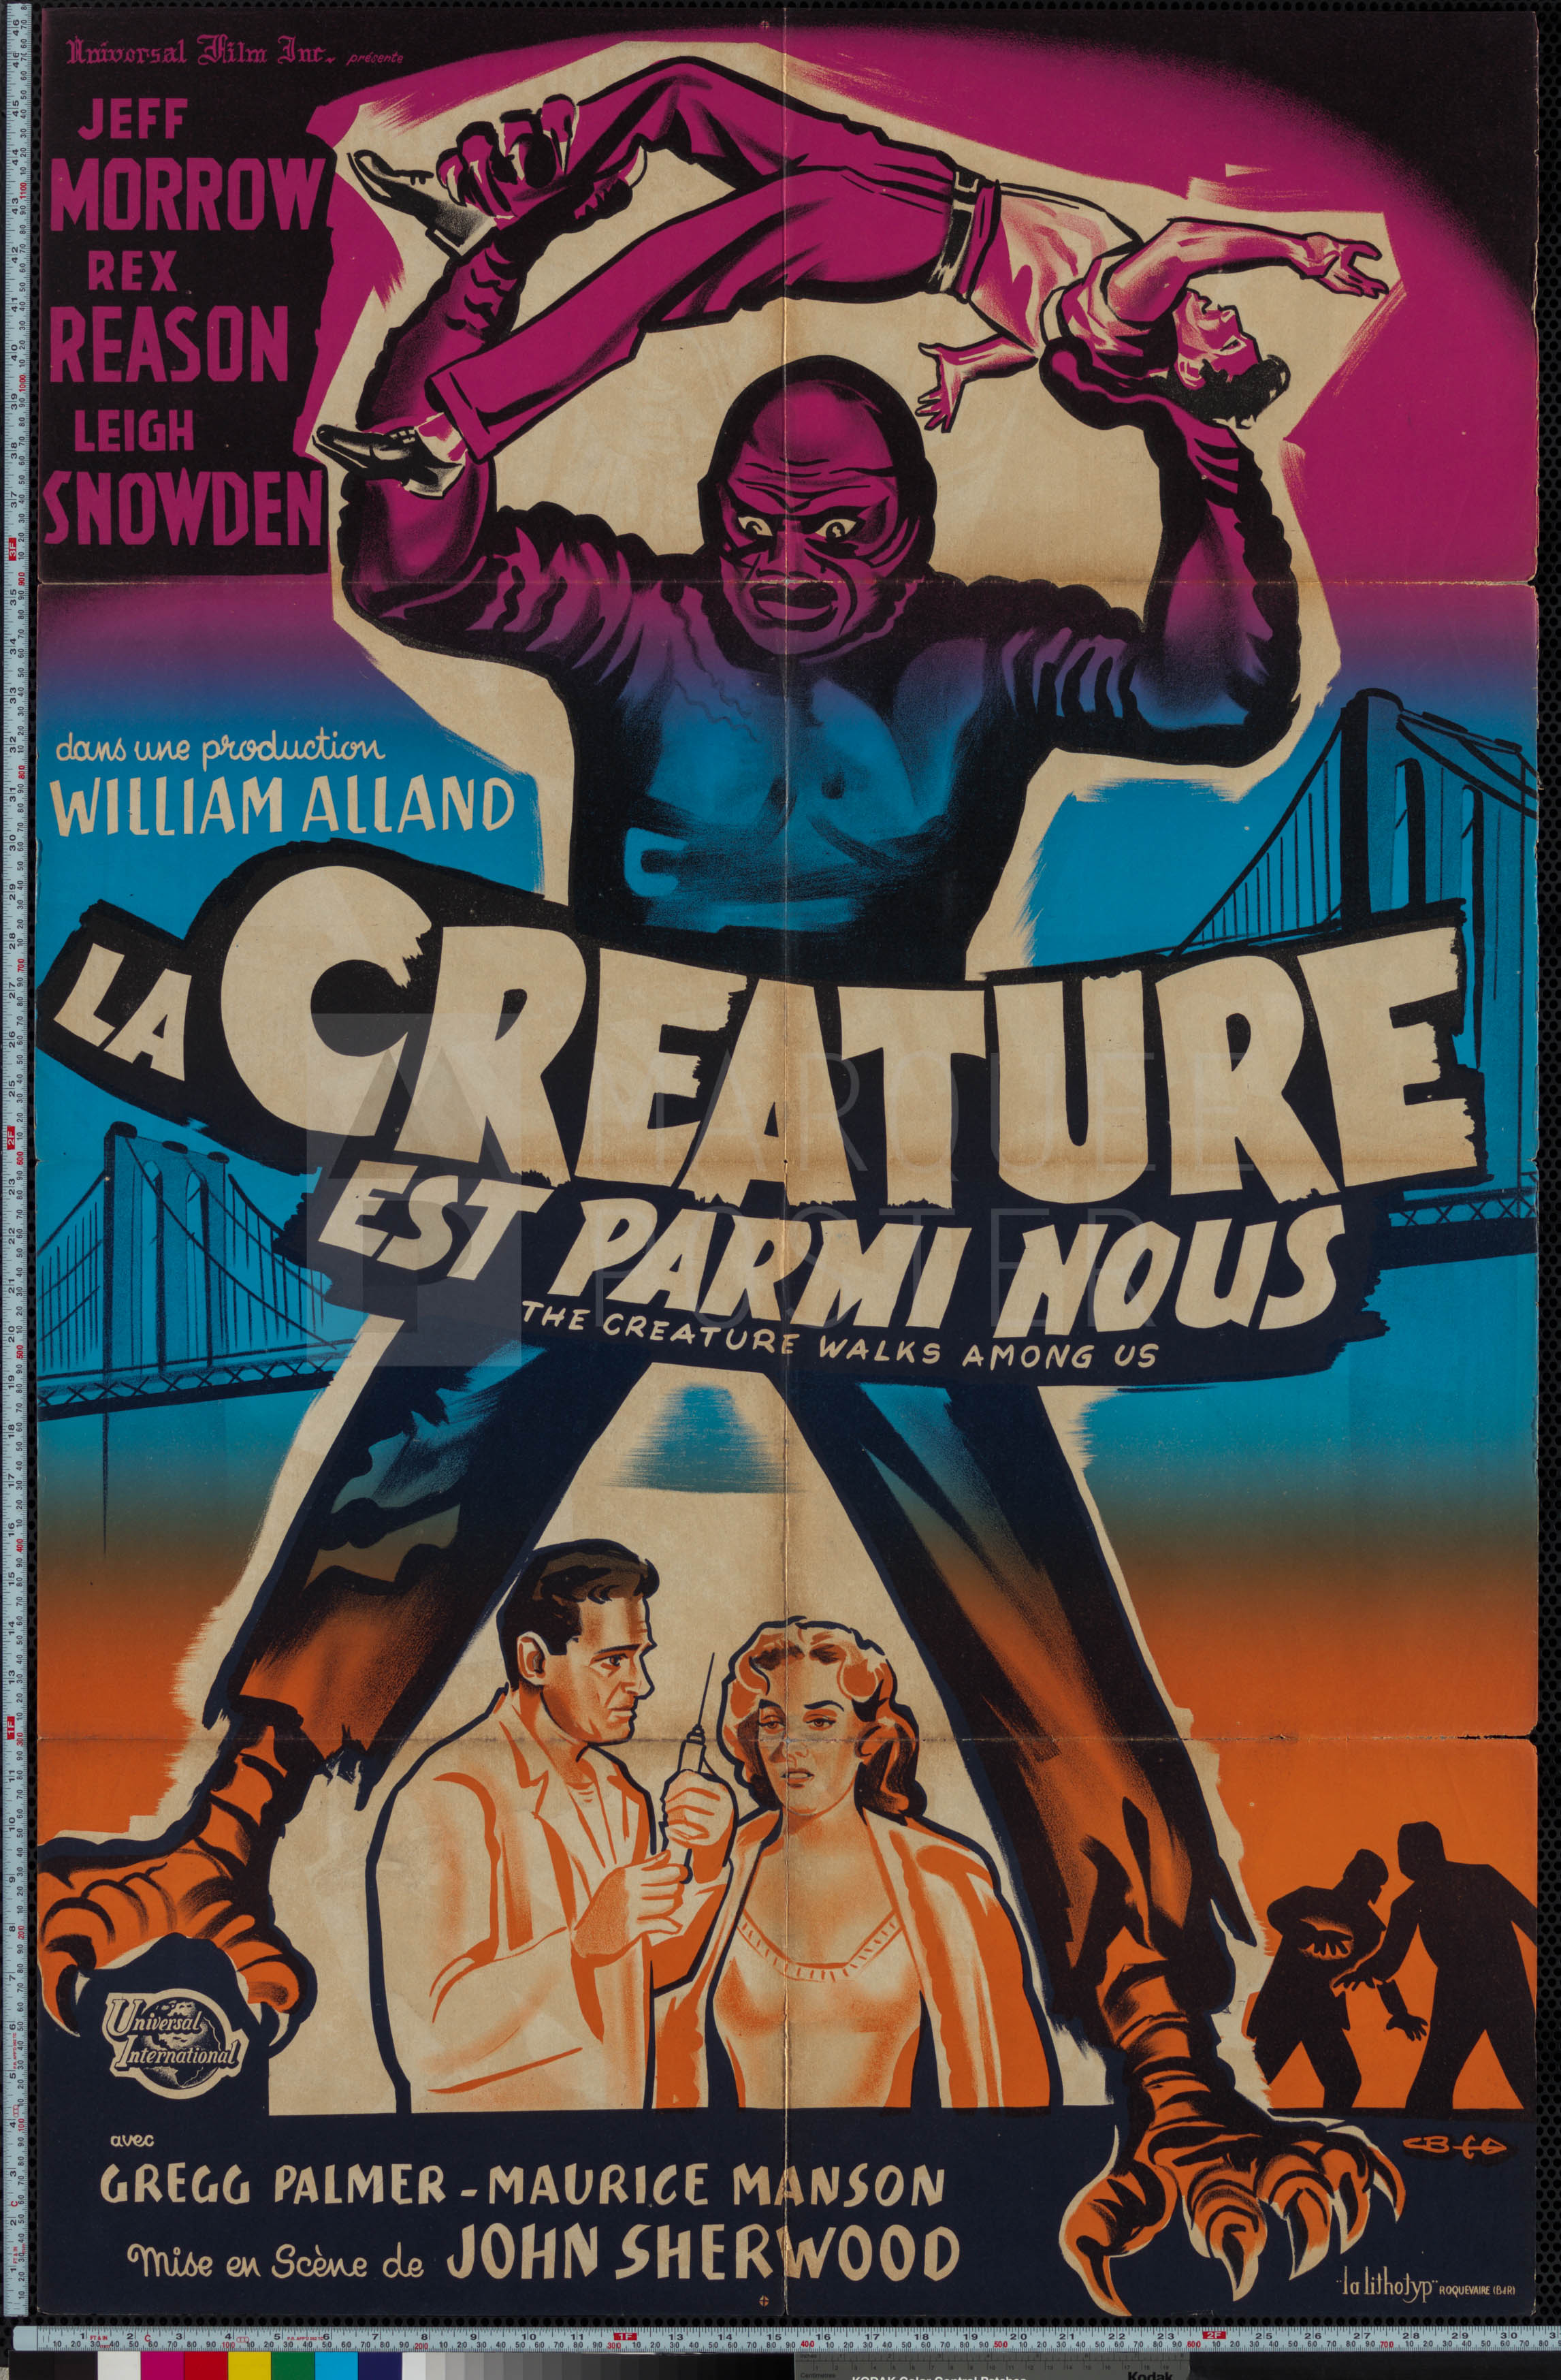 42-creature-walks-among-us-french-half-grande-1959-02